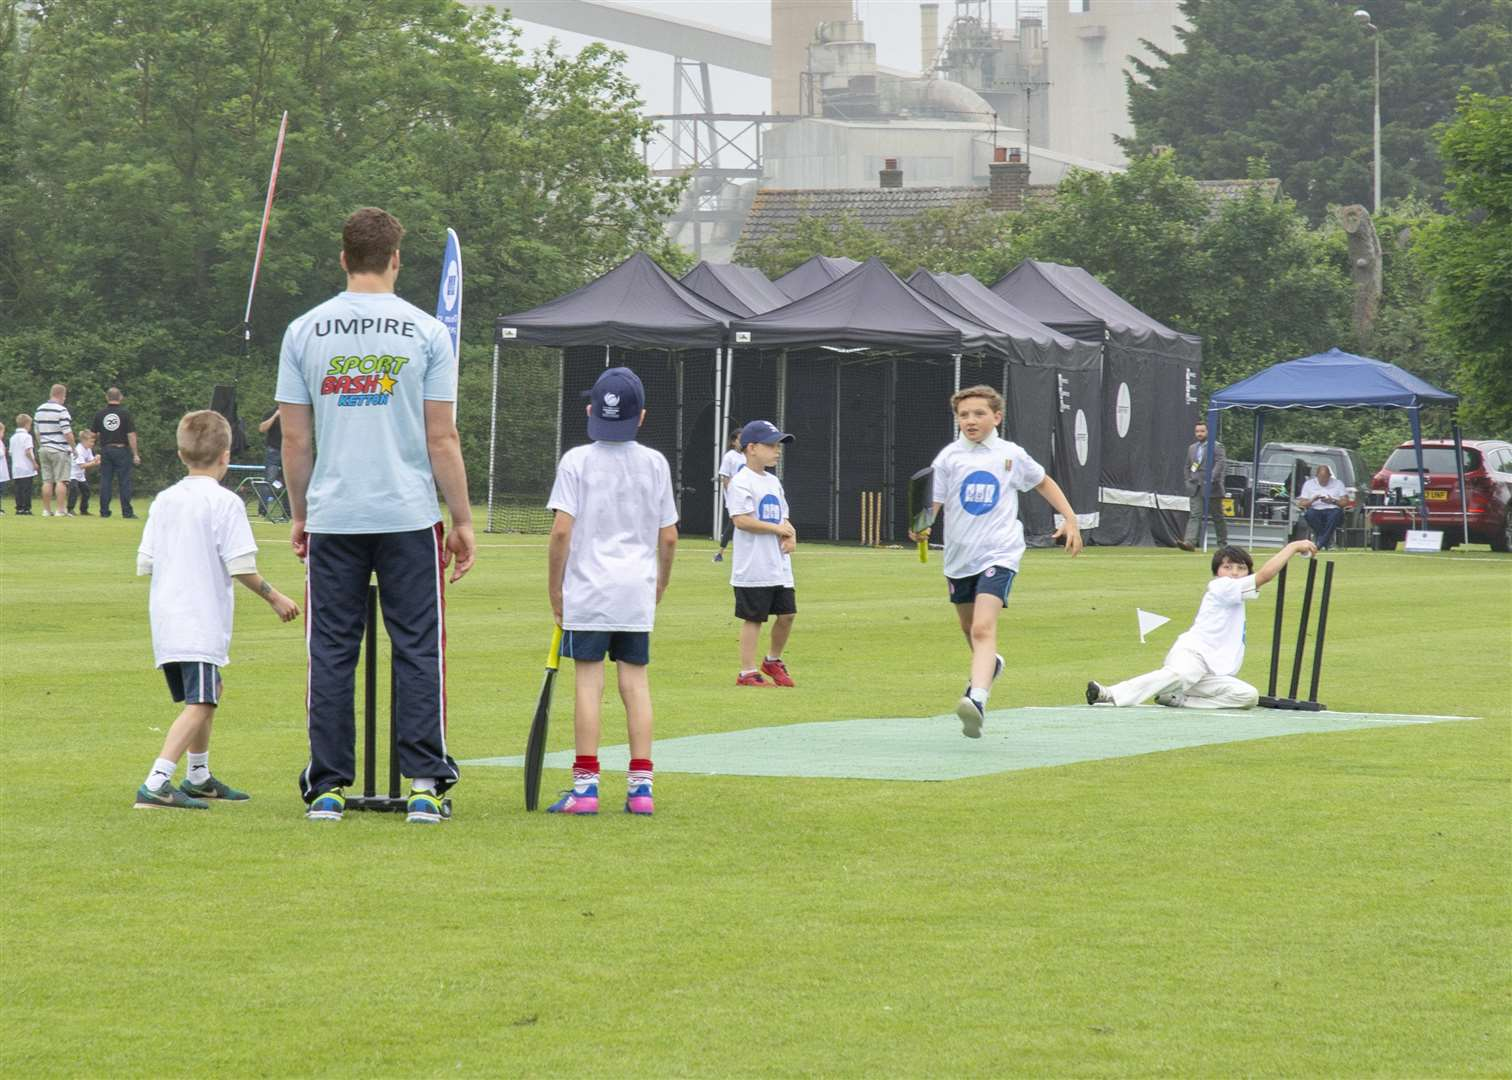 Future stars in action in the BGL Kwik Cricket tournament Photo: Lee Hellwing